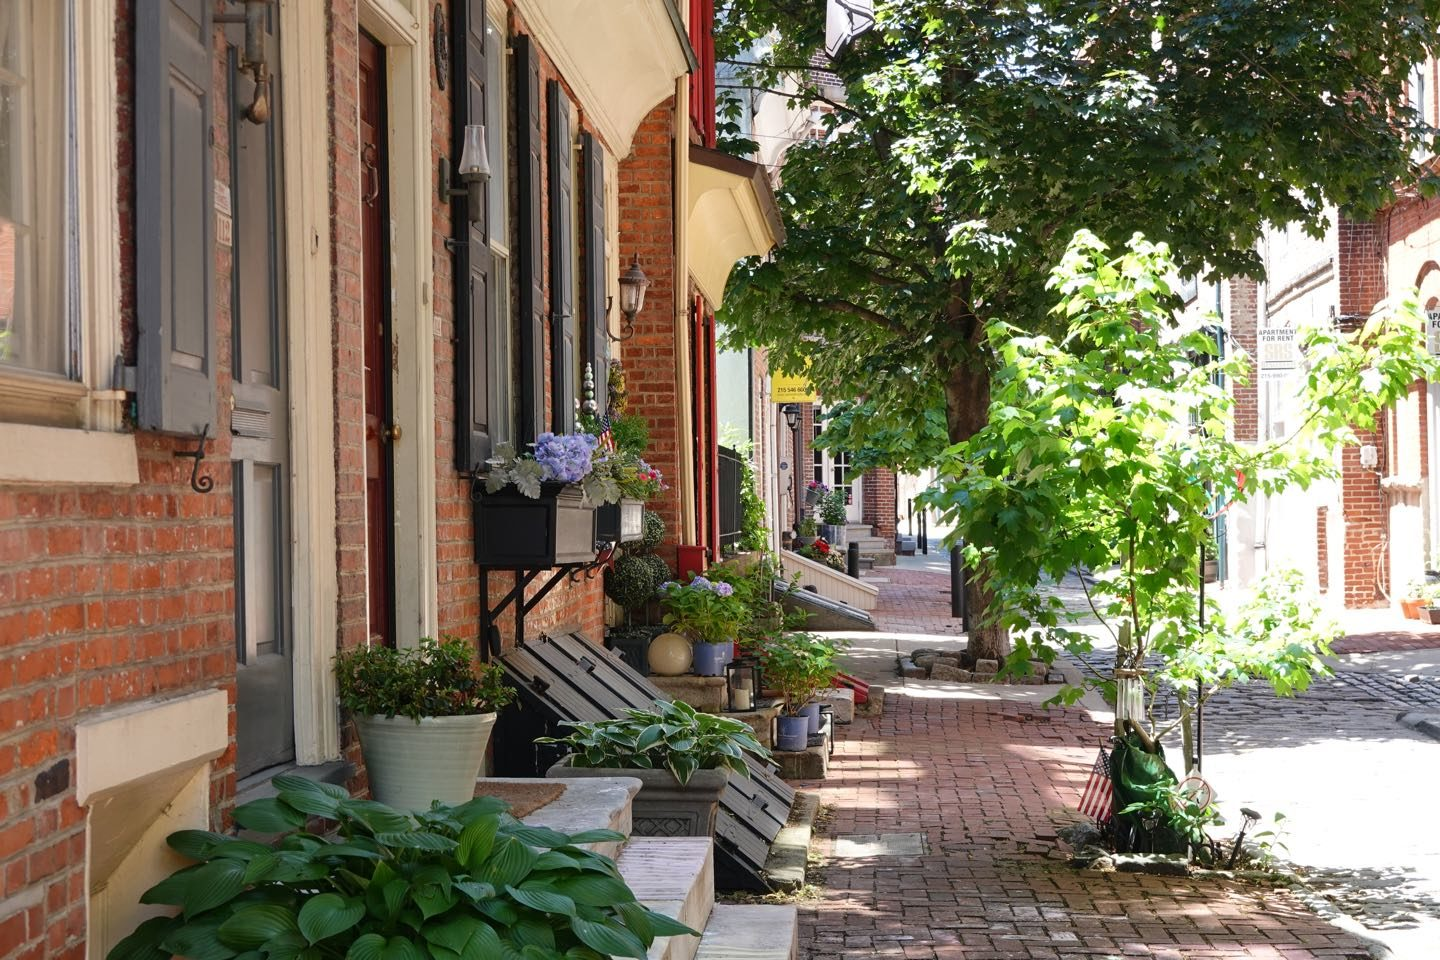 Lovely alleys of Philadelphia.